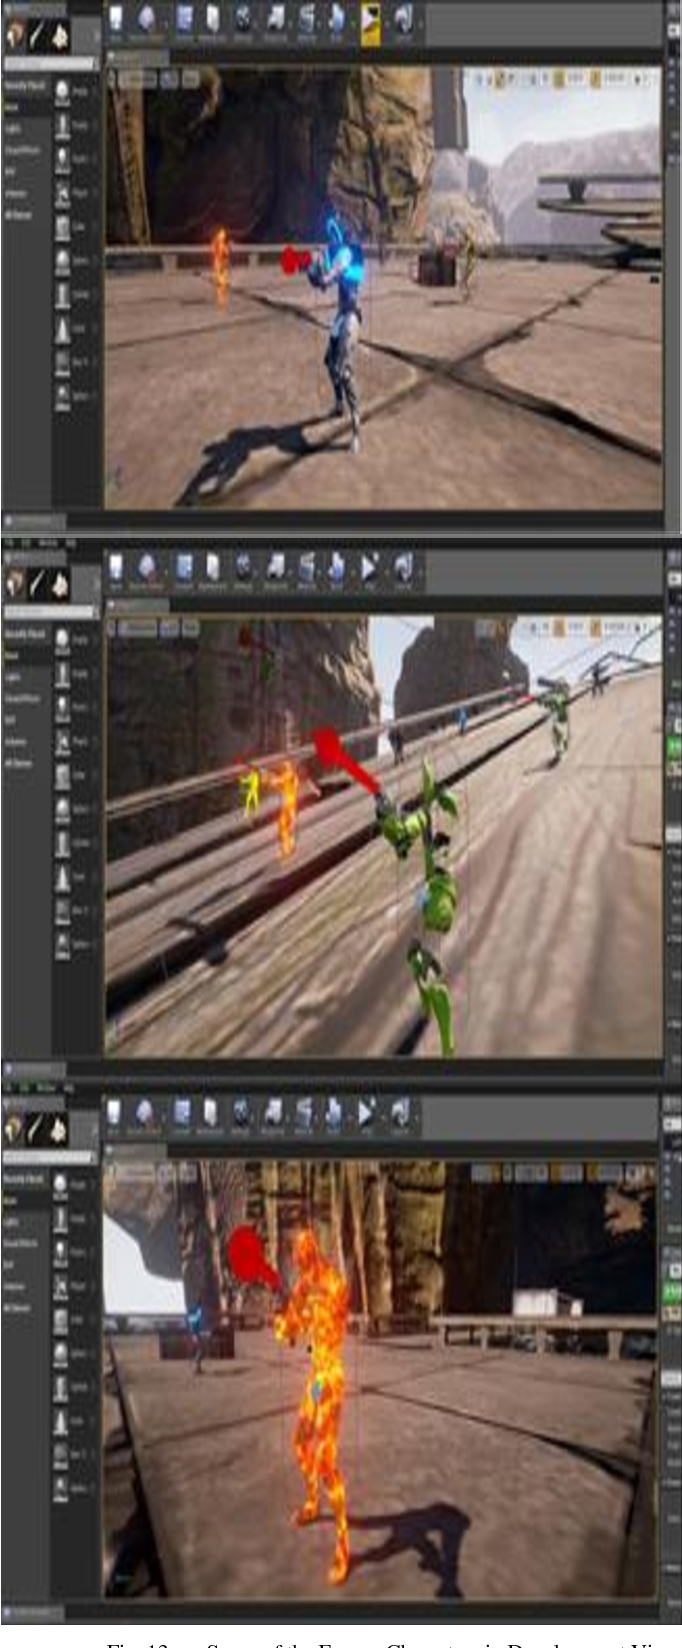 Pdf Applied Artificial Intelligence In 3d Game Hysteria Using Unreal Engine4 Semantic Scholar